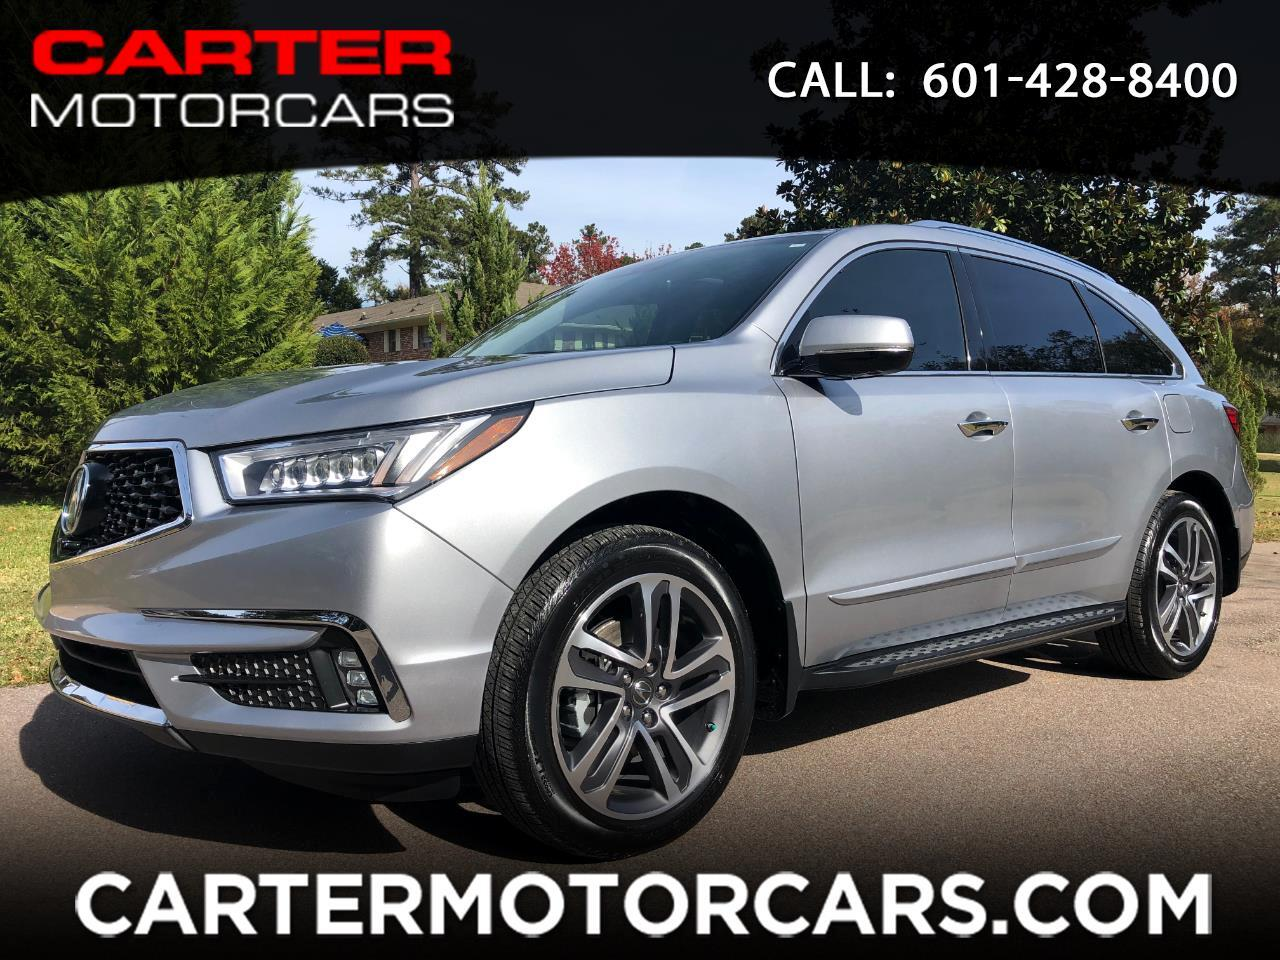 2018 Acura MDX 9-Spd AT Advance Package